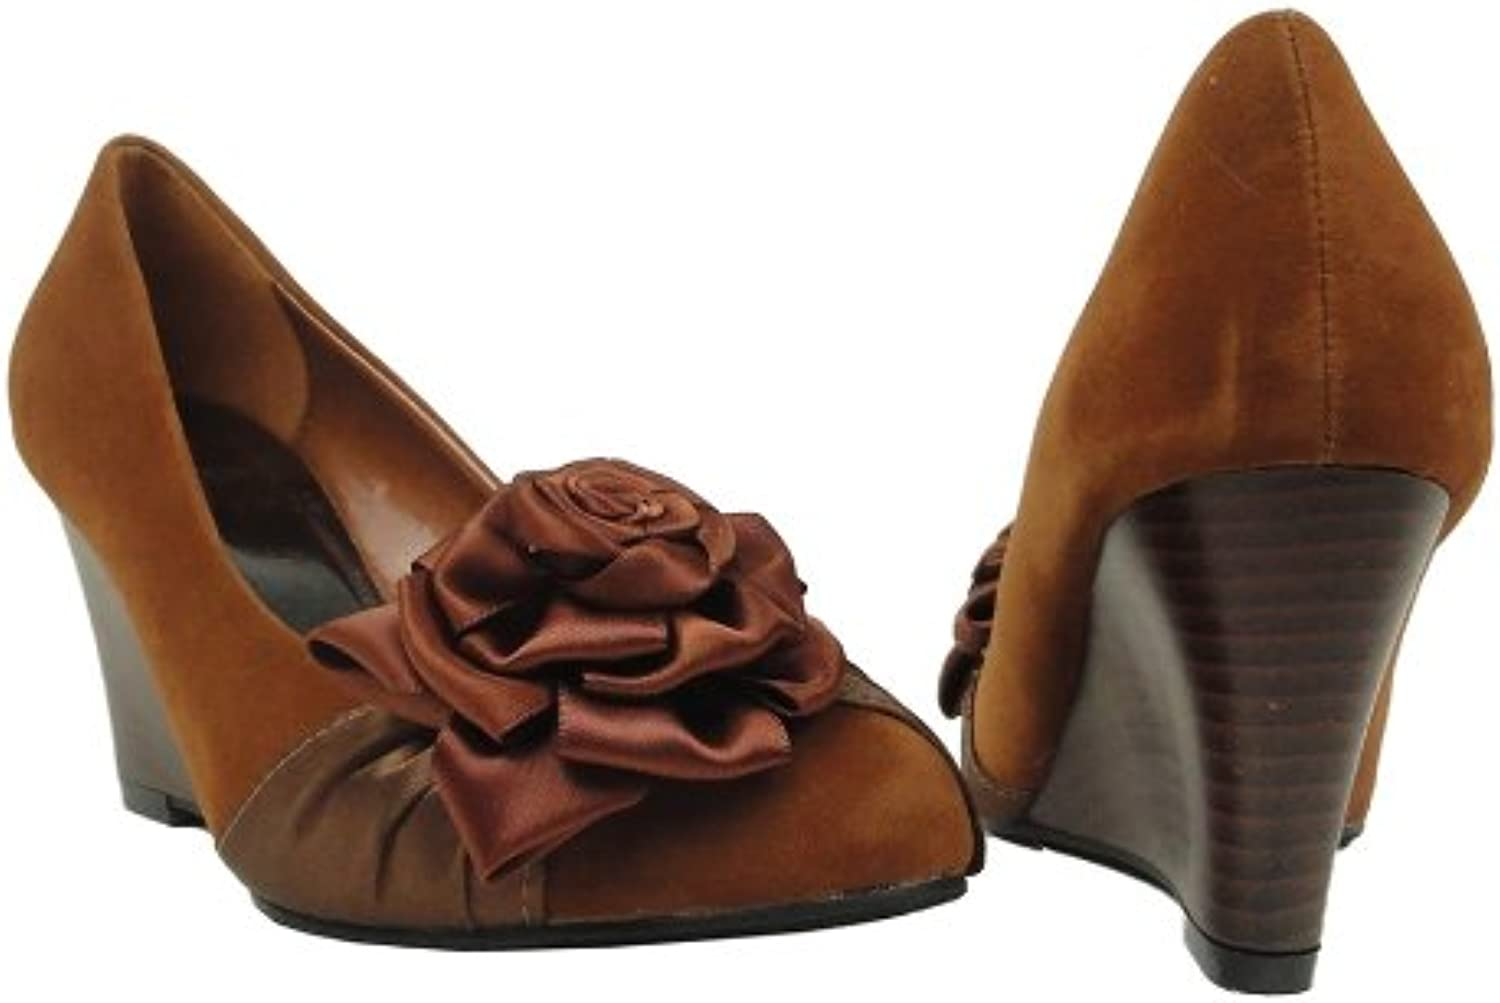 DS By KSC Womens Faux Suede Slip On Wedges Pumps w Flower pinkttes Coffee Brown